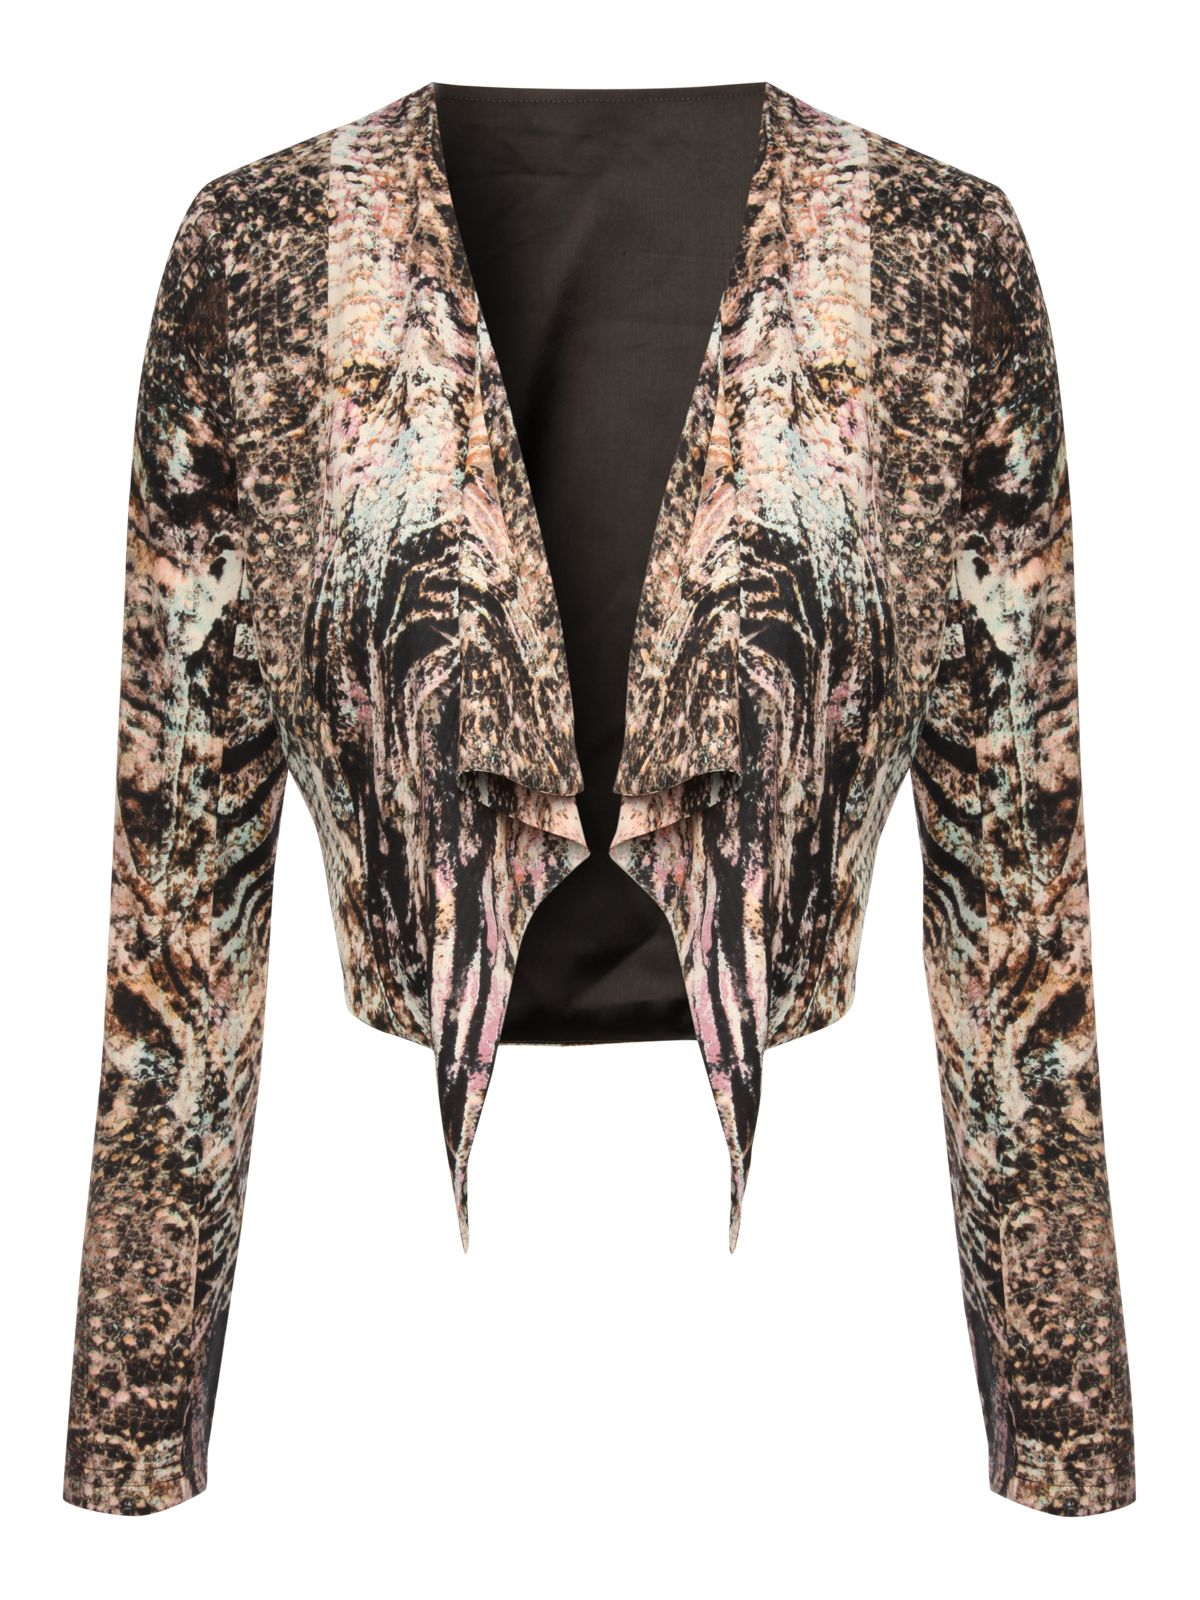 Animal print waterfall jacket